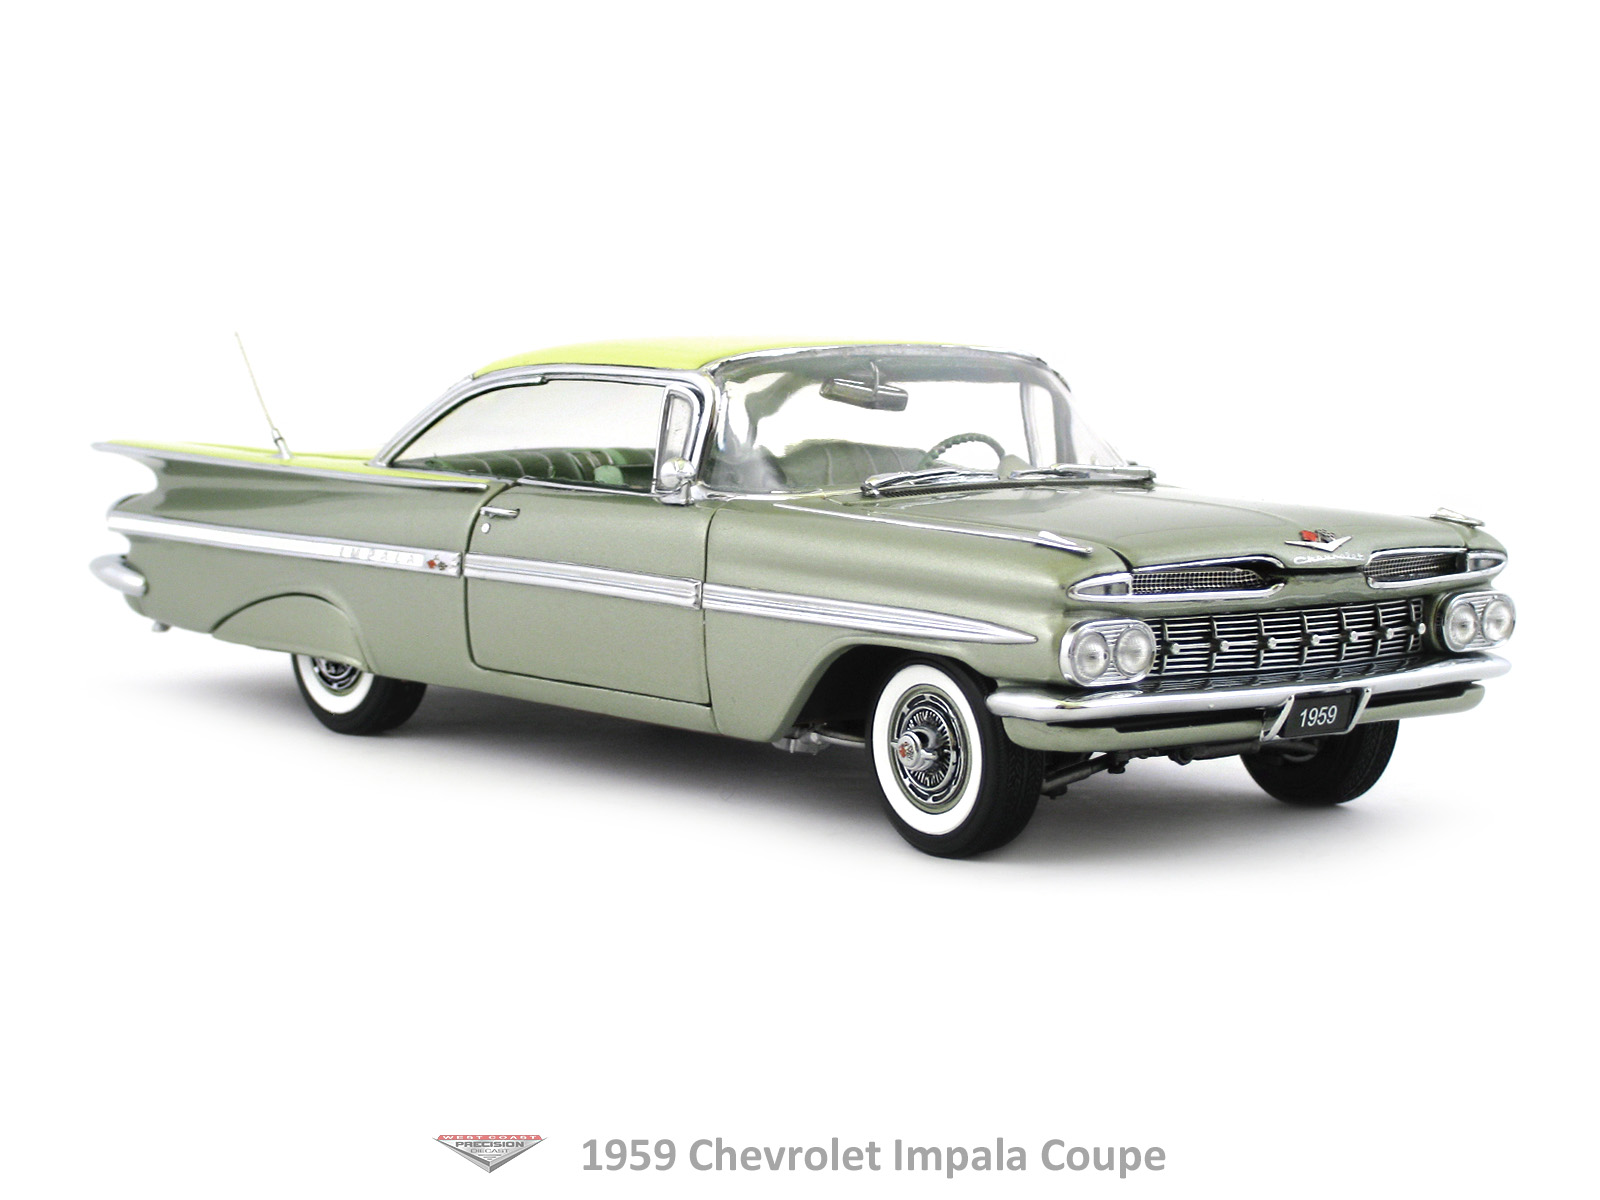 ford of franklin html with 1959 Chevrolet Impala Coupe West Coast on The Japanese And Manchuria furthermore Mb605 also Mb299 furthermore 1969 Dodge Charger General Lee Danbury also 1956 Packard Caribbean Hardtop Danbury.